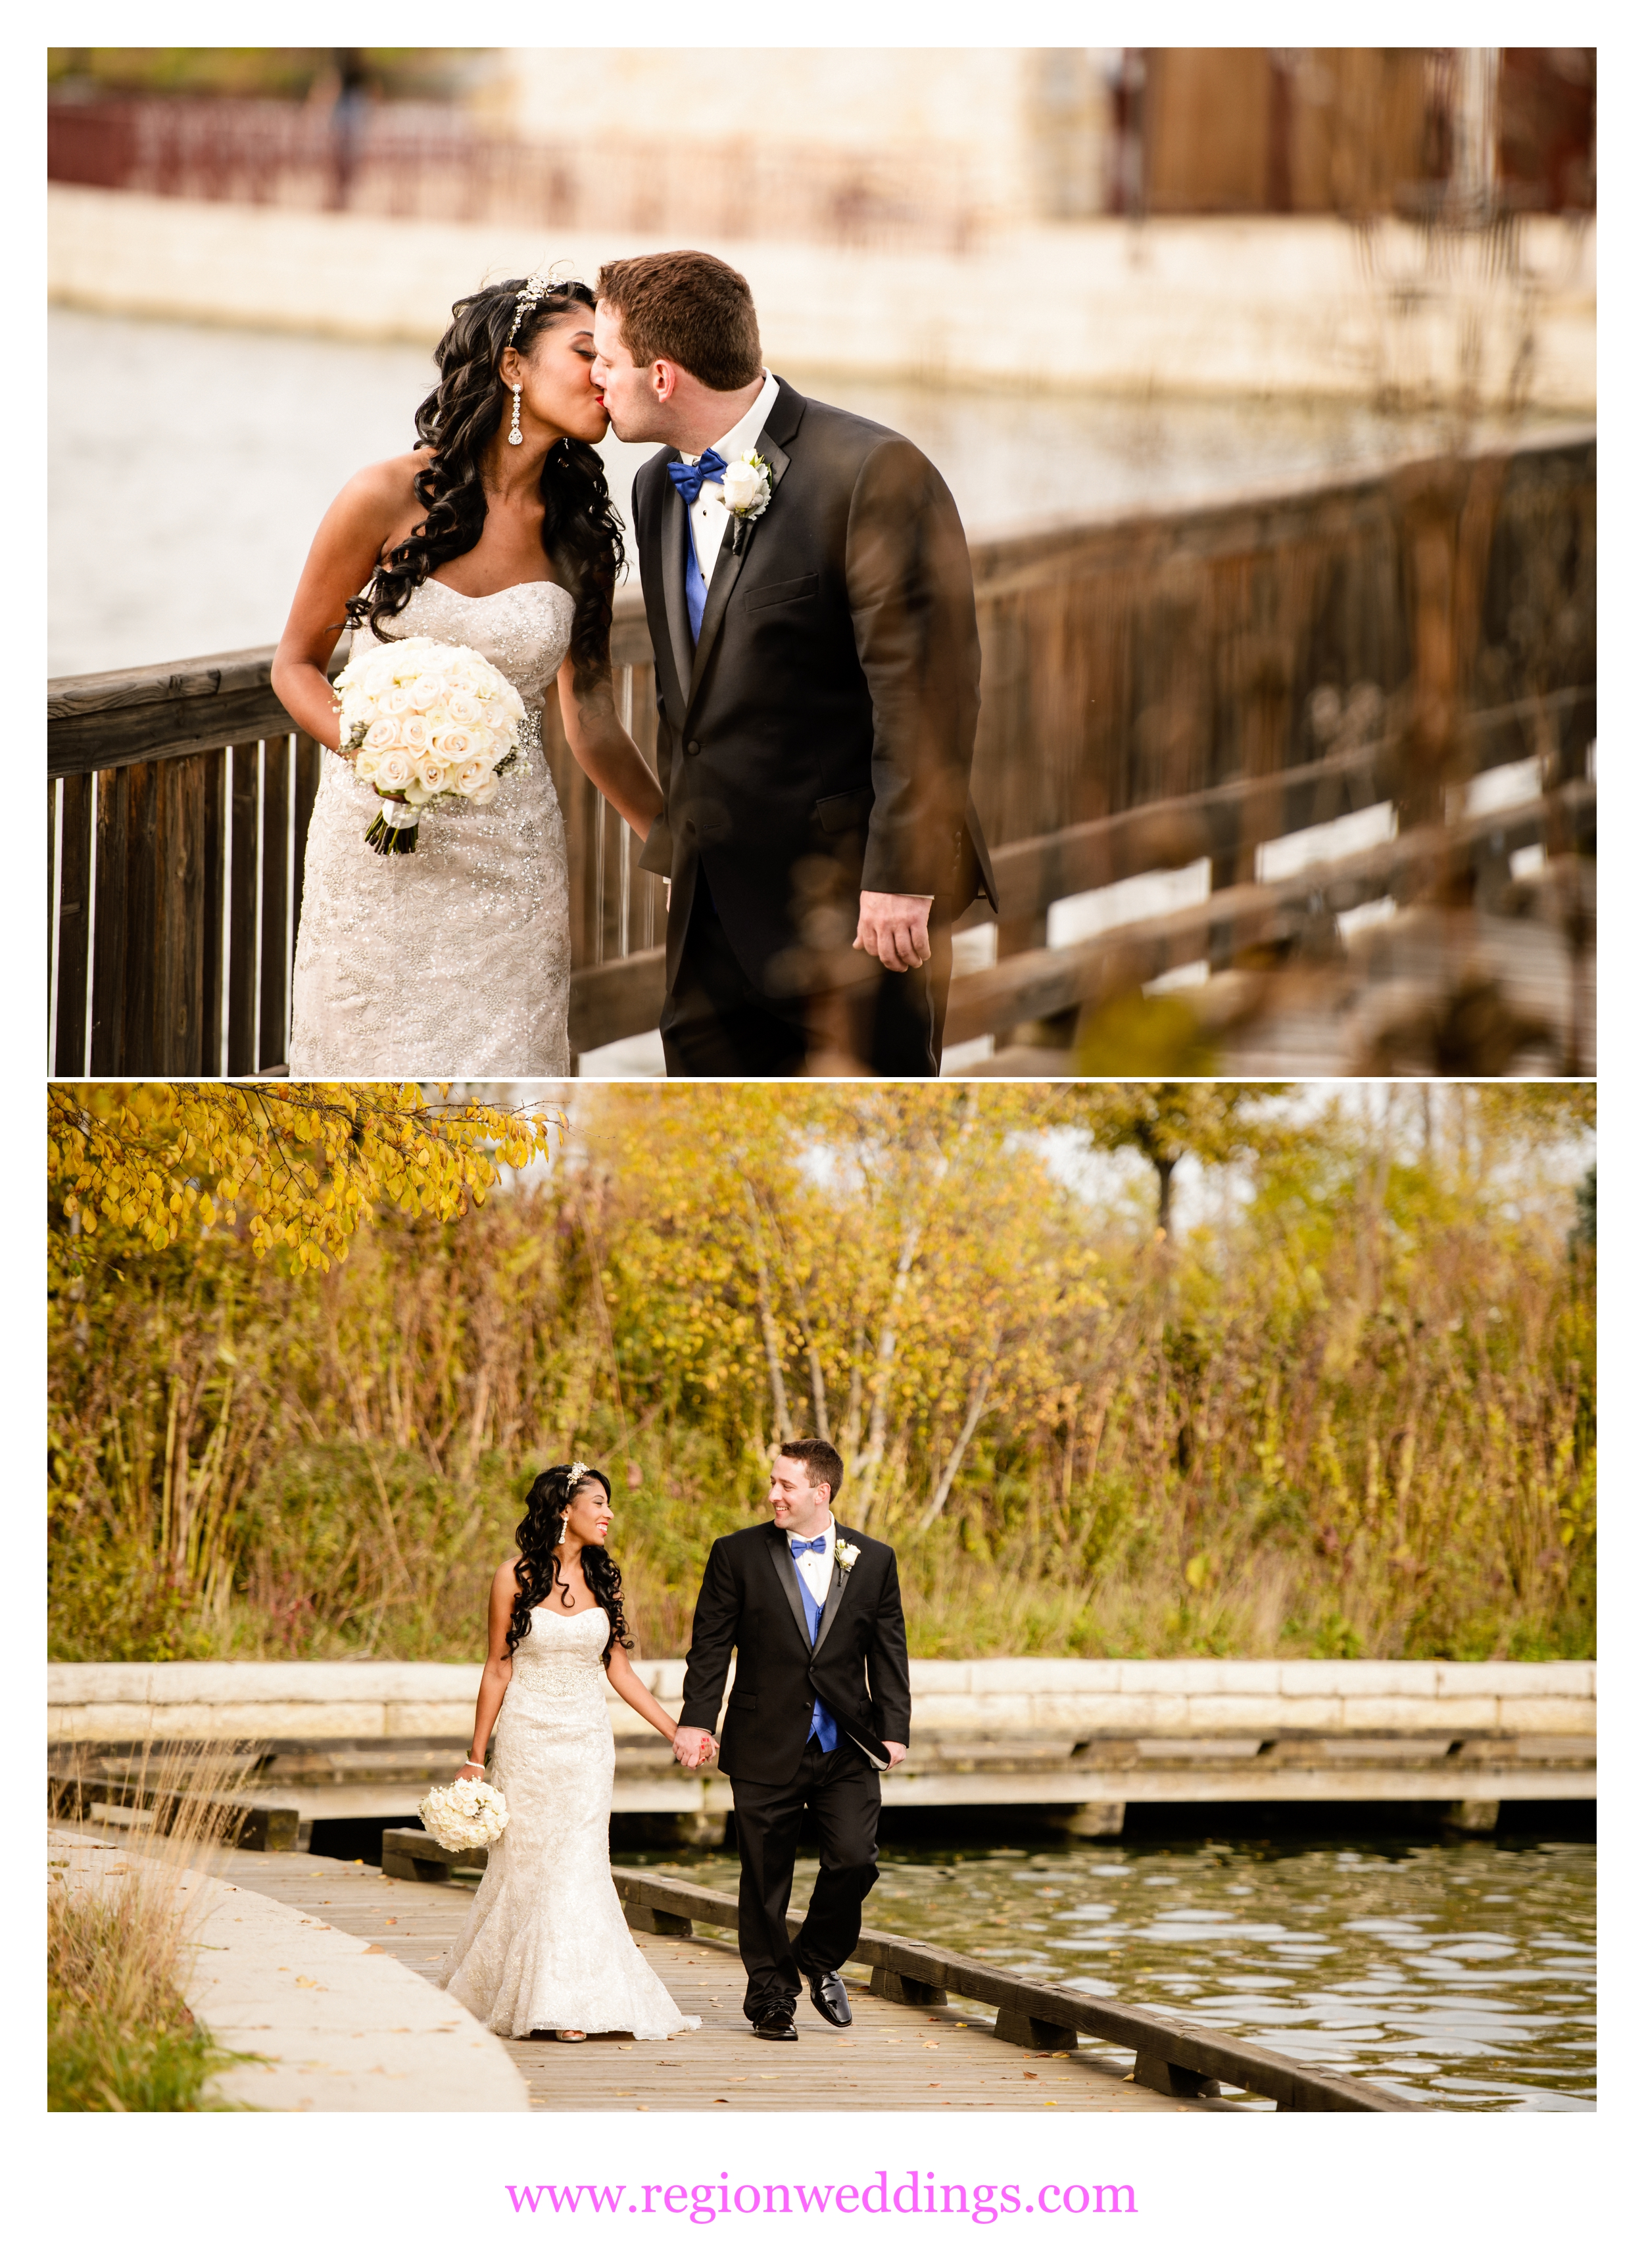 The bride and groom stroll around the lake at Centennial Park.